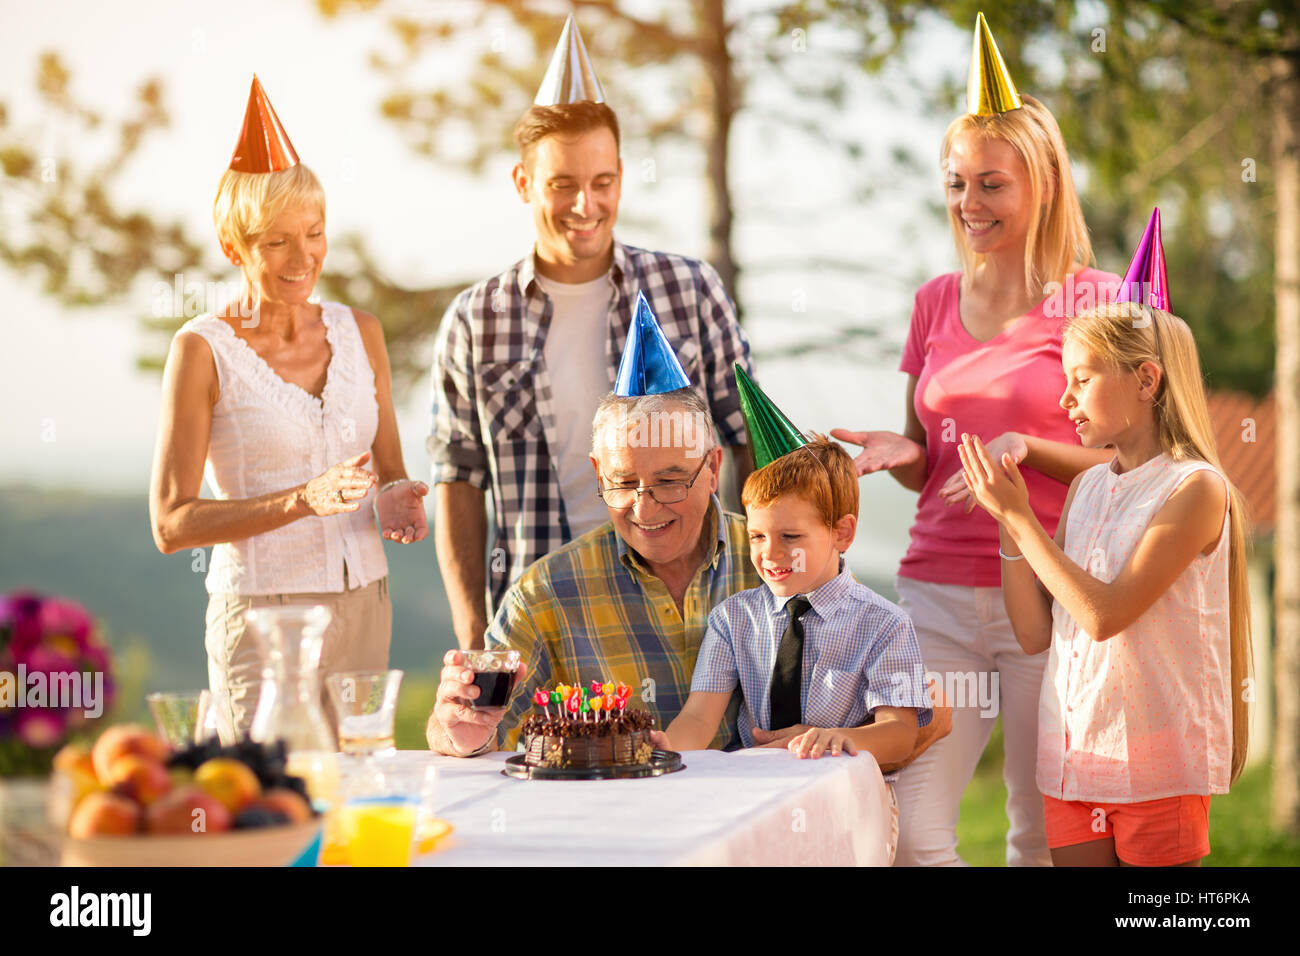 grandfather and grandson on birthday party celebration with family